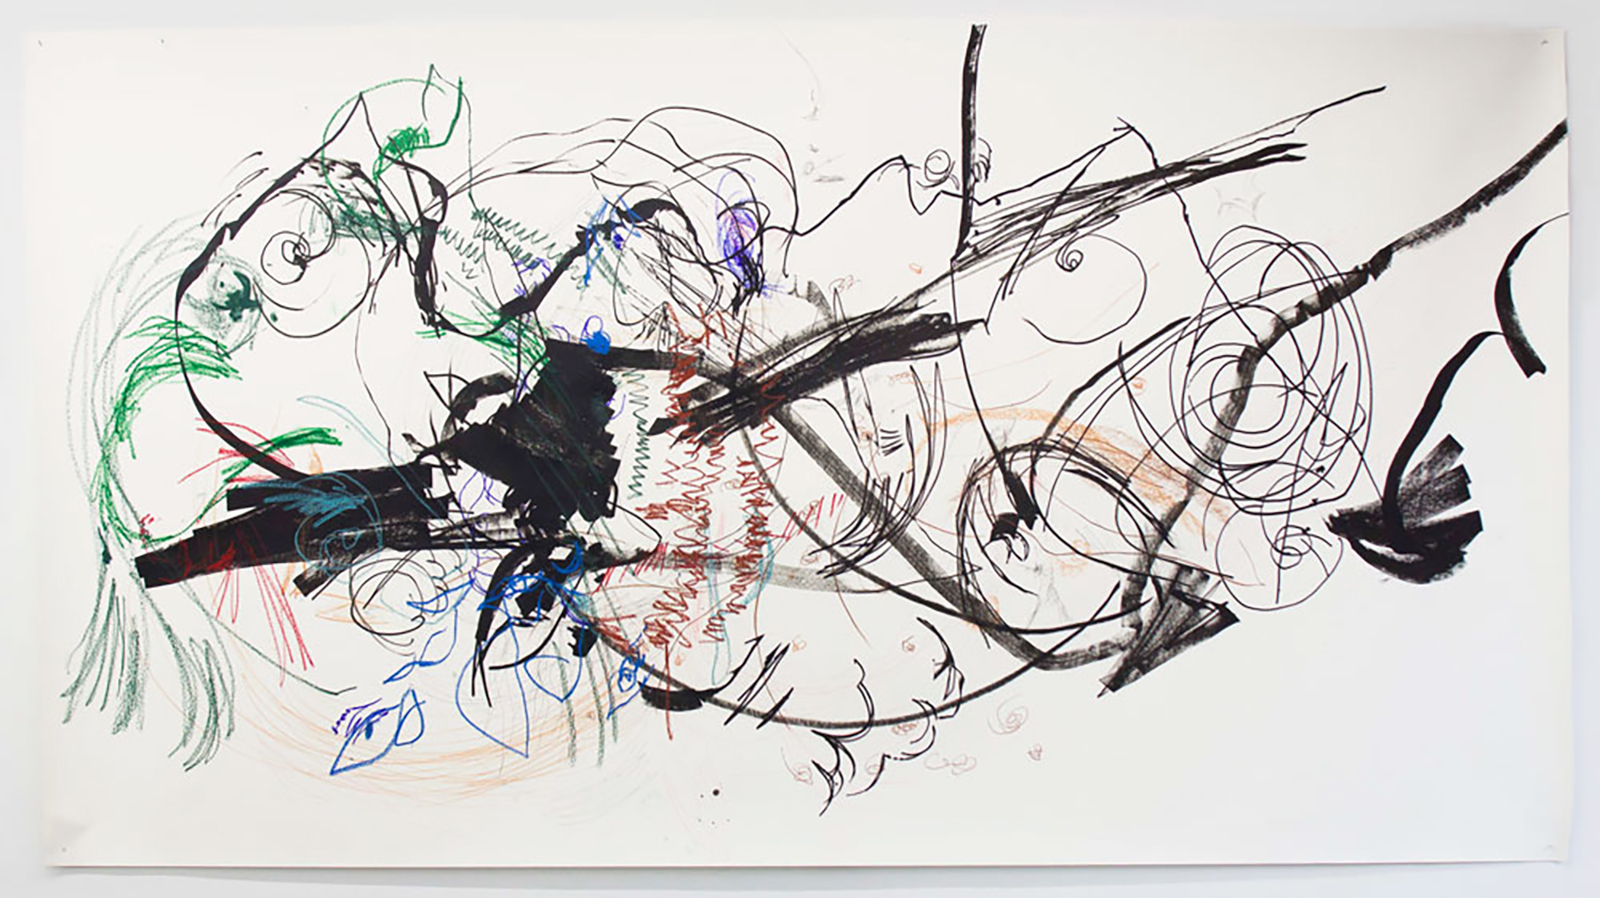 Carceri 1 , 2012.   Acrylic paint, charcoal, graphite, oil pastel, and ink on Japanese paper.   72 x 132 inches (182.88 x 335.28 cm)   © Lia Chavez